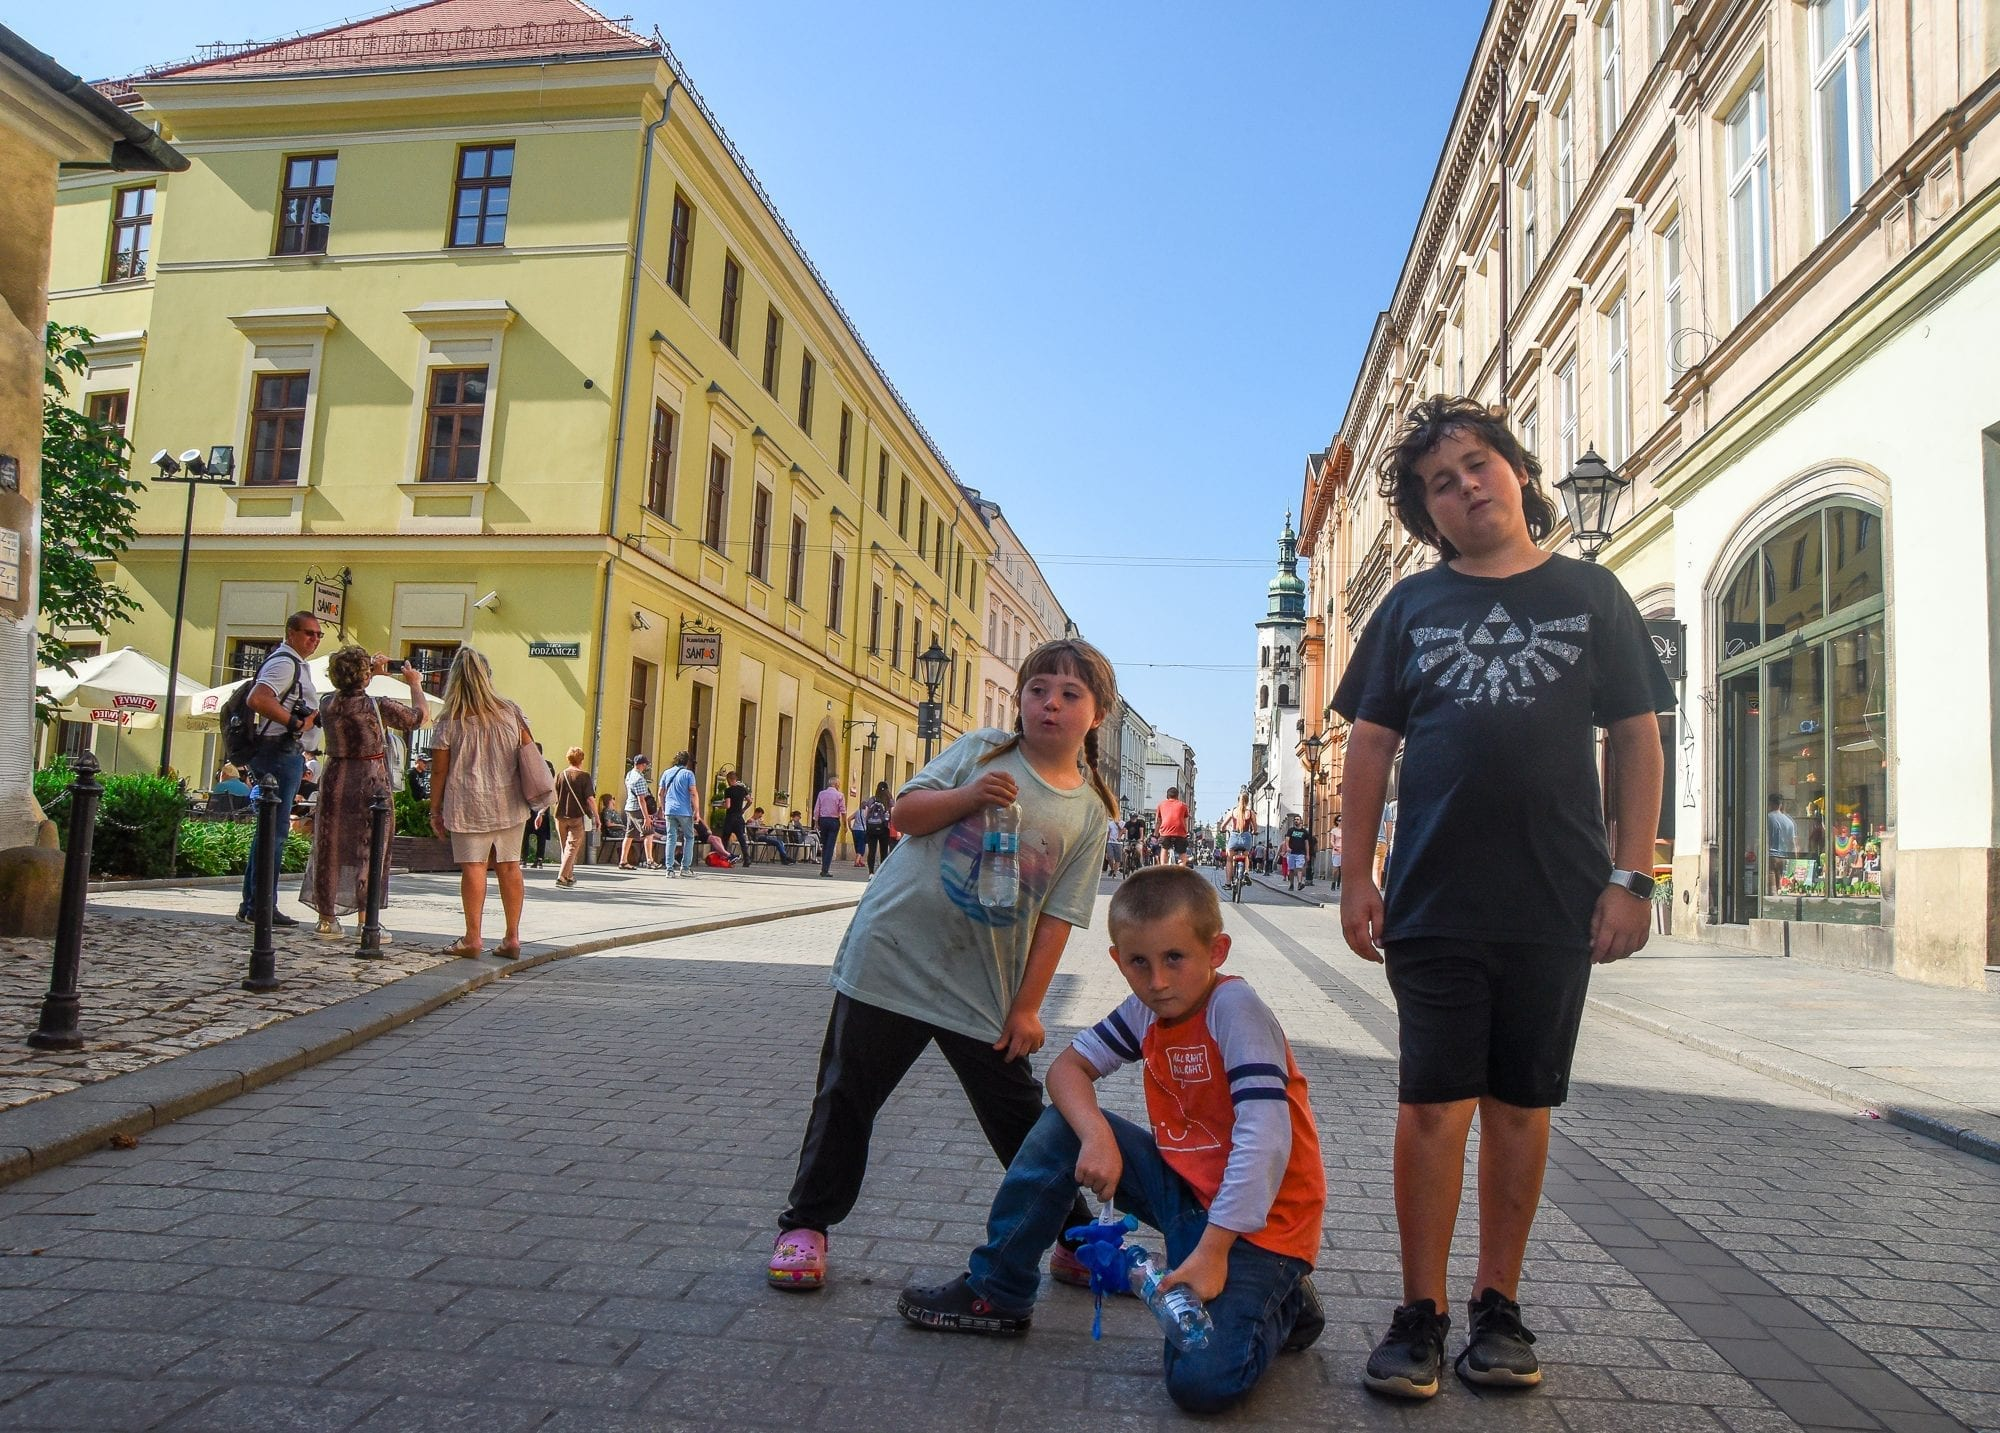 3 kids in the main market area